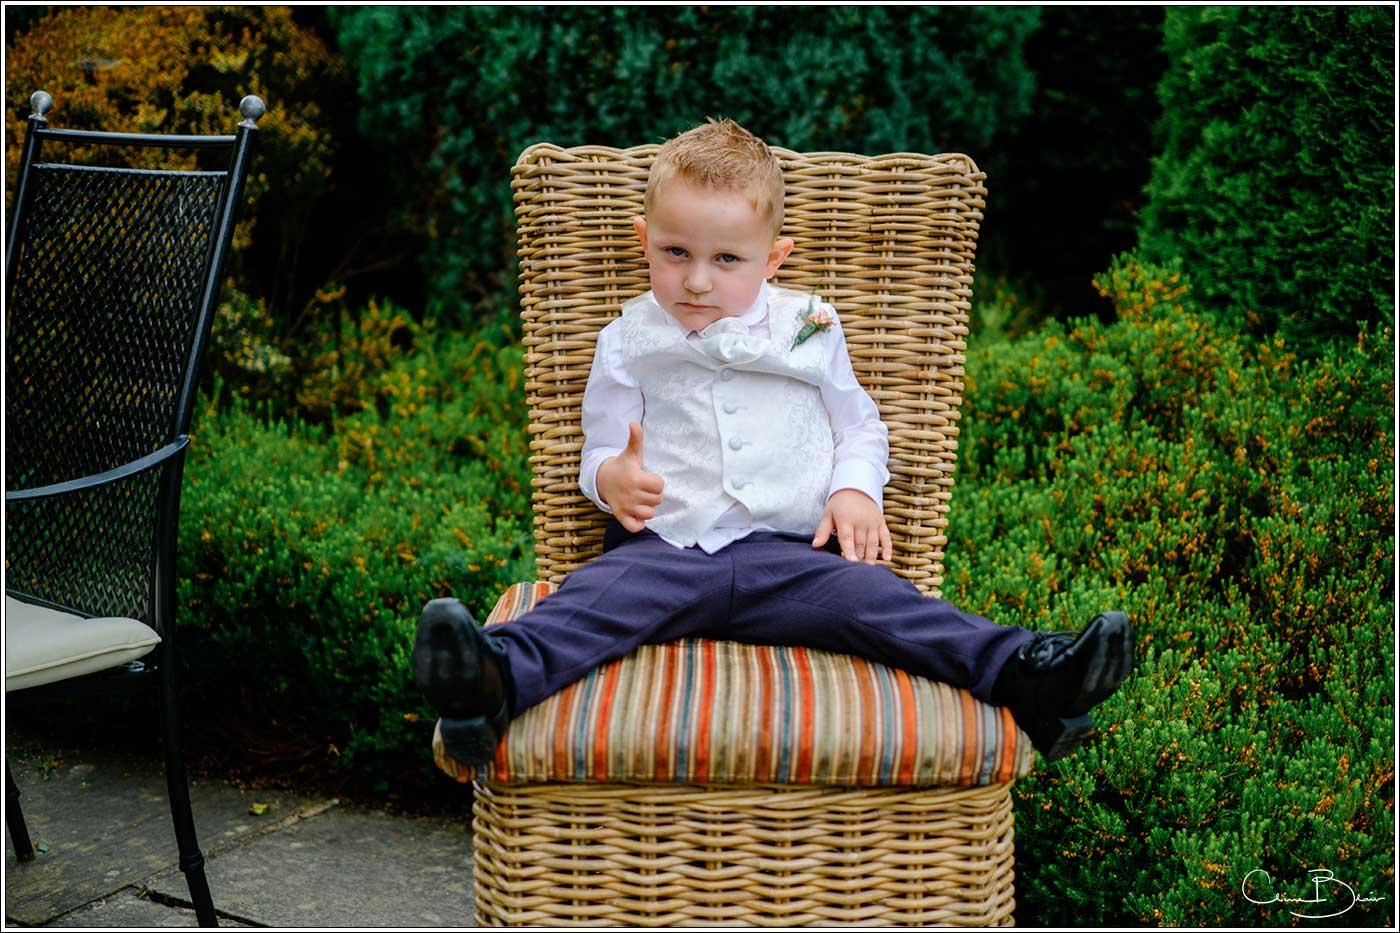 Coombe Abbey wedding photography showing child giving a thumbs up to the camera